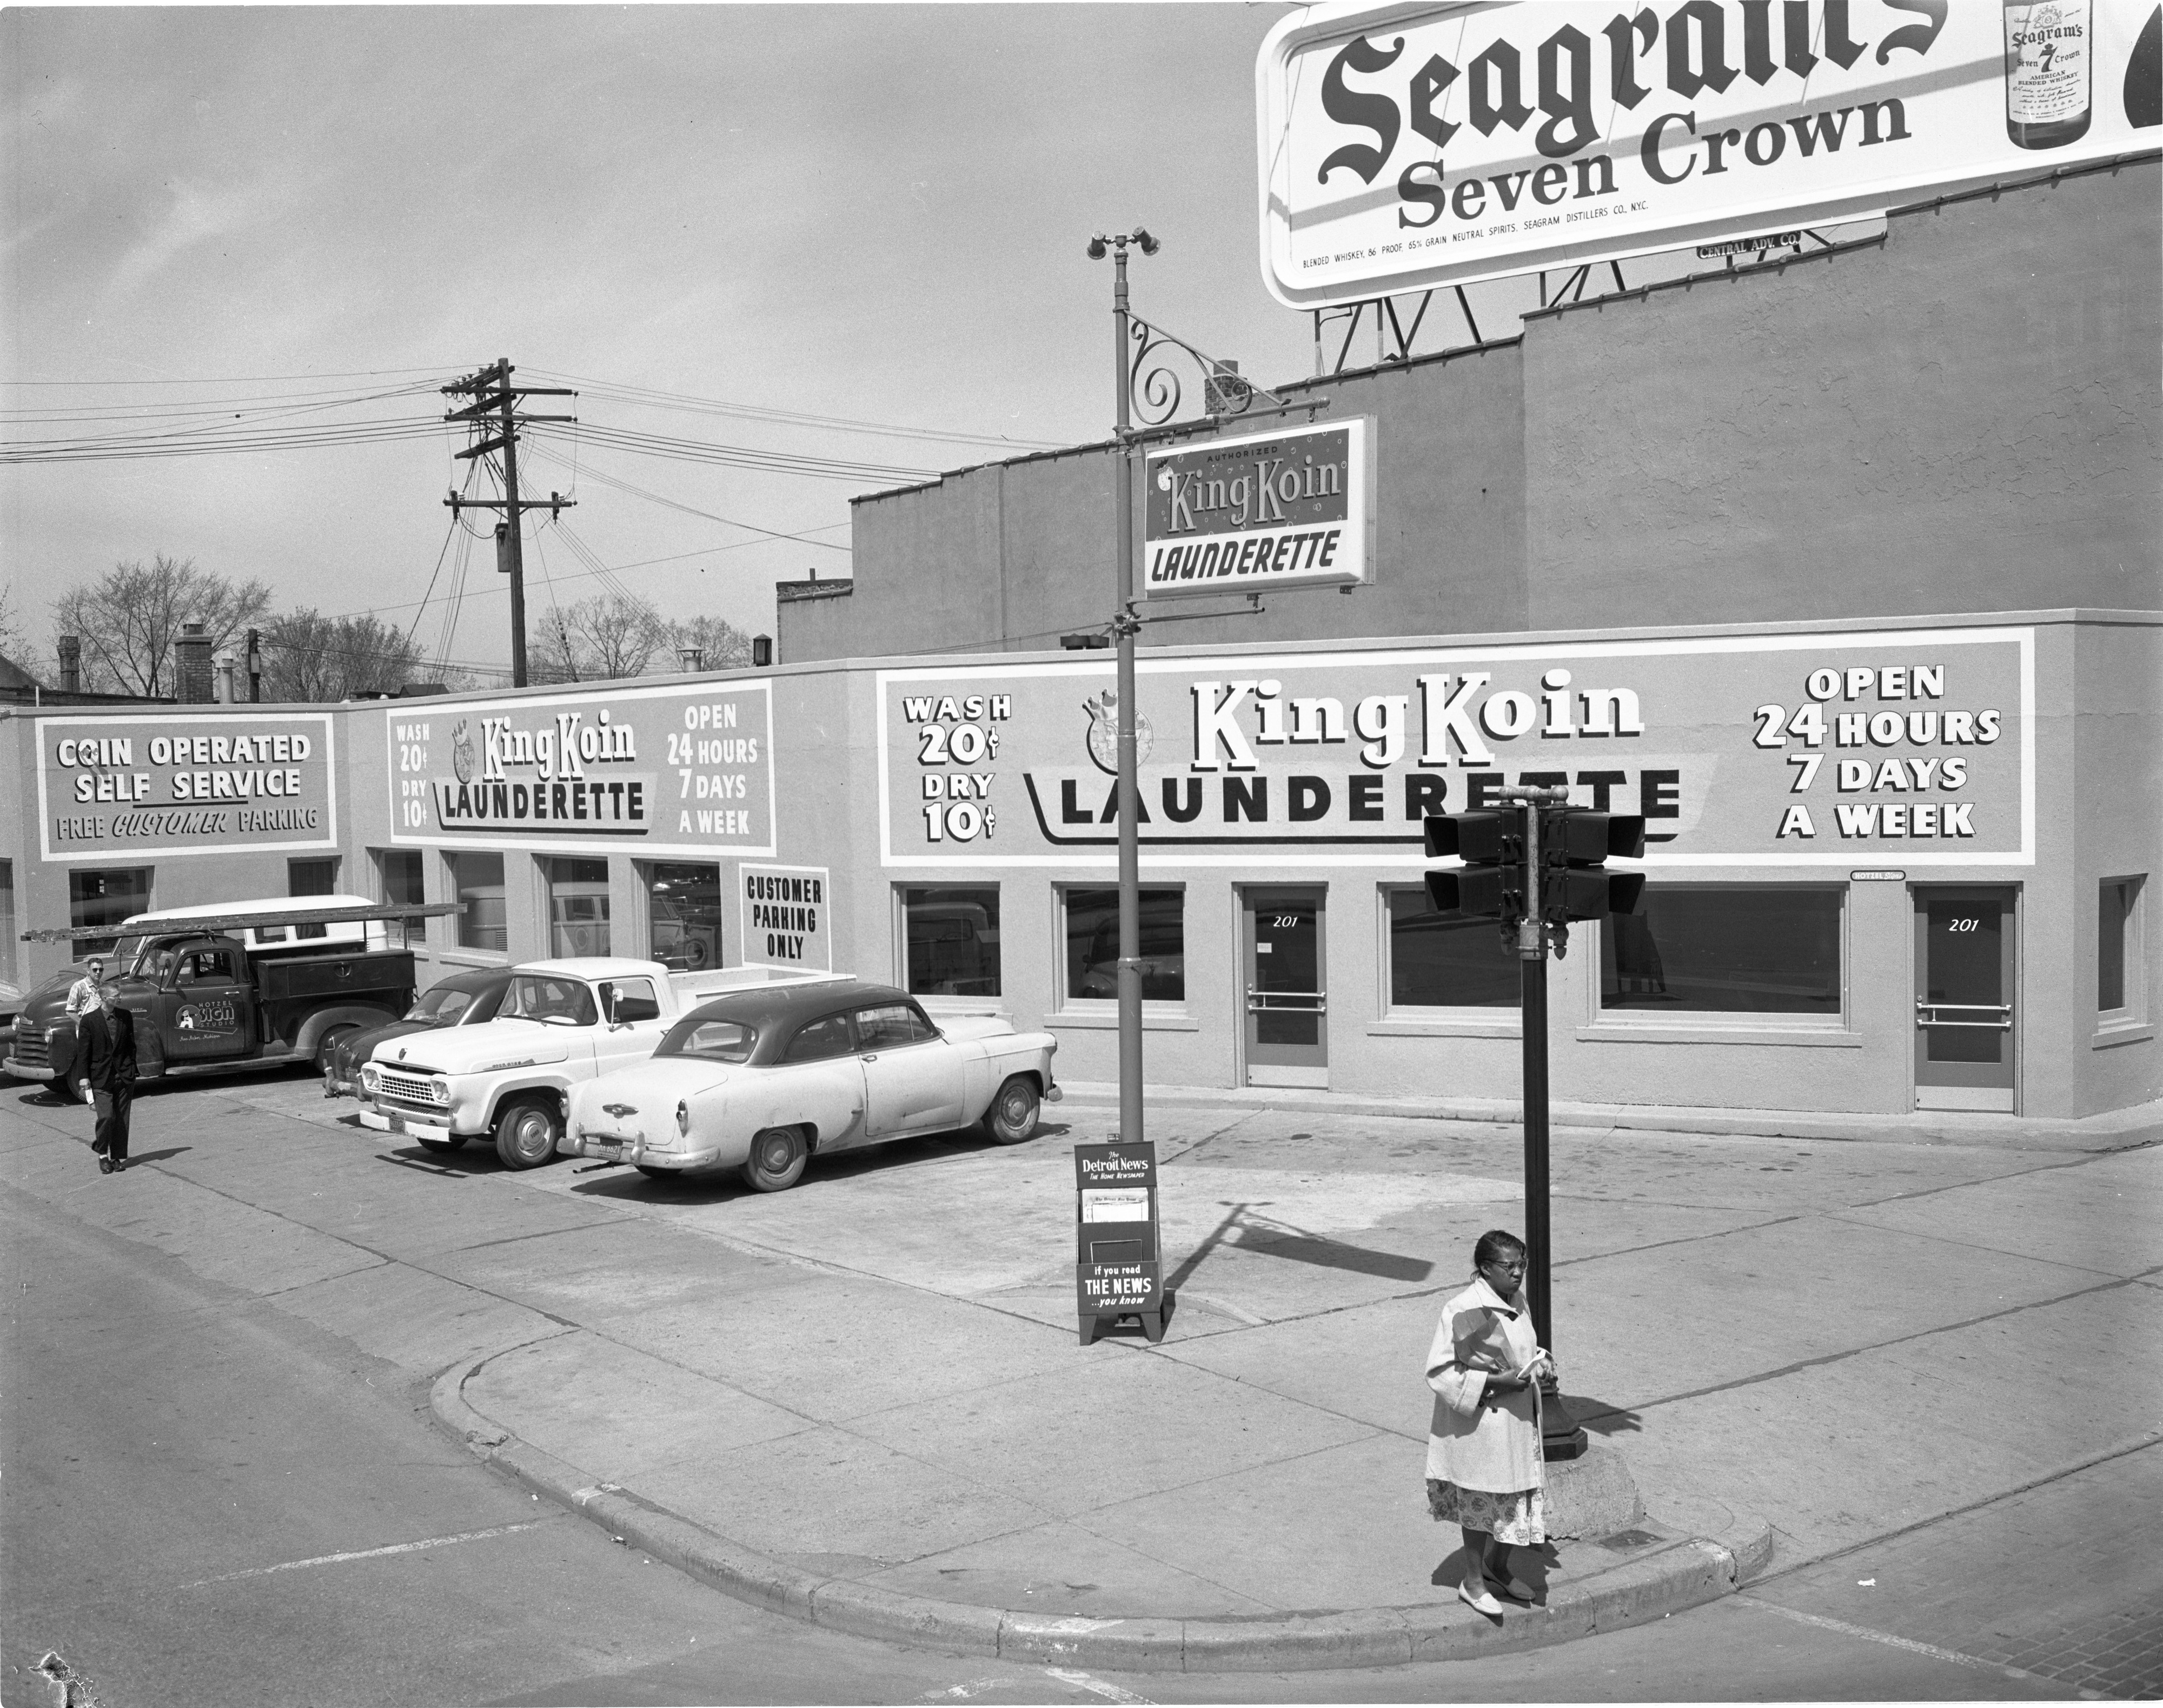 King Koin Launderette - 201 N Main St, April 1959 image